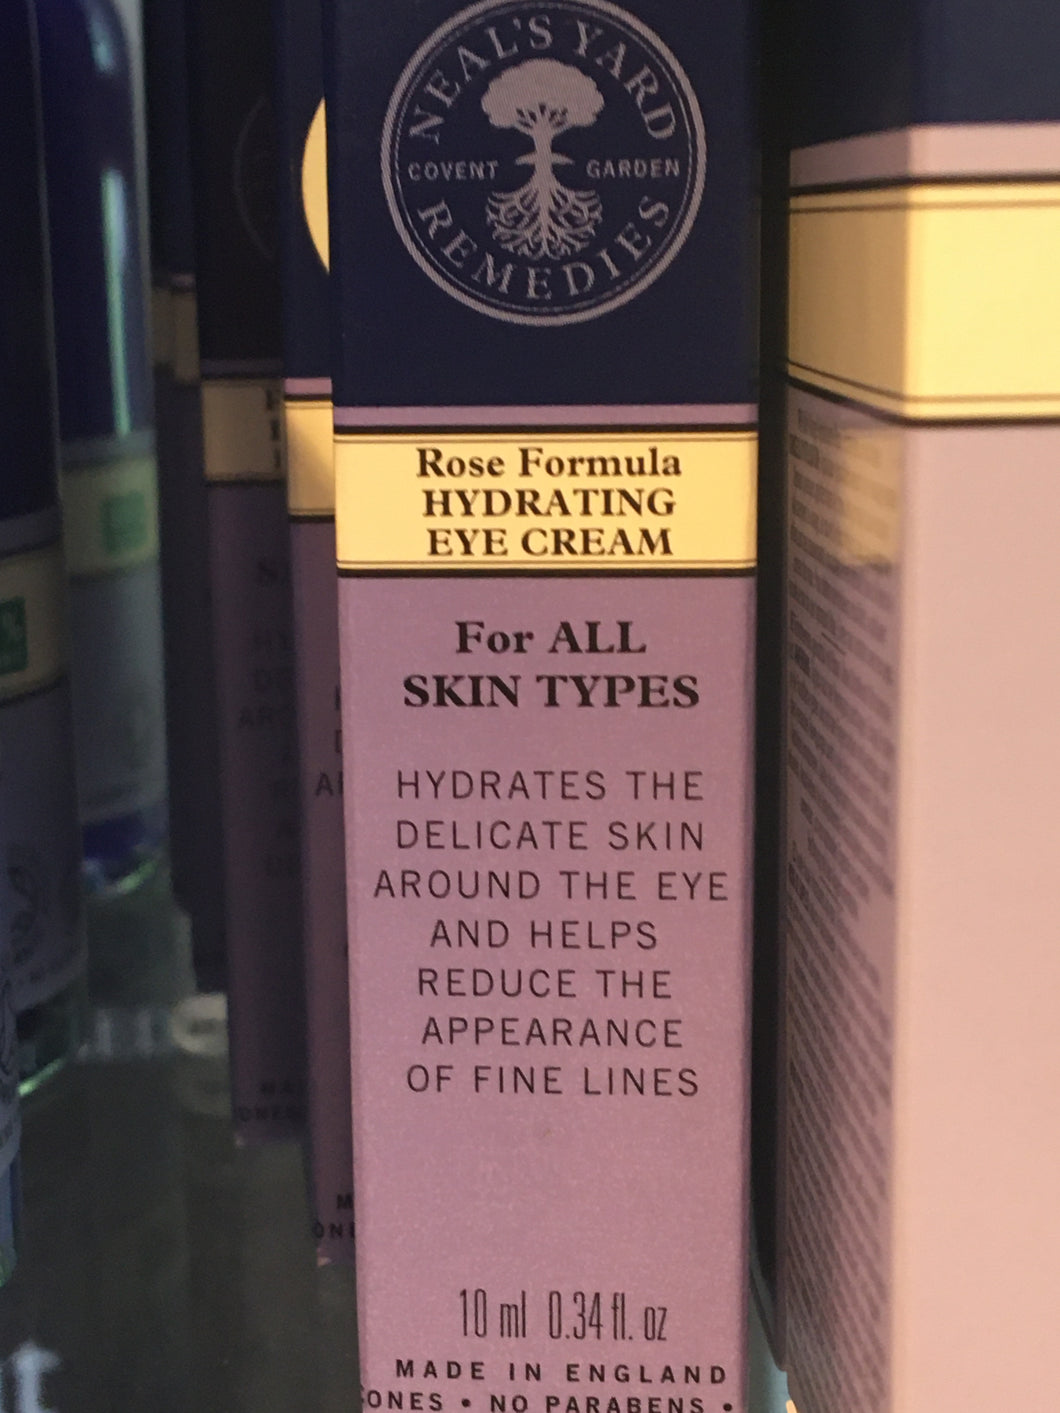 NYR Rose Formula Hydrating Eye Cream 10m